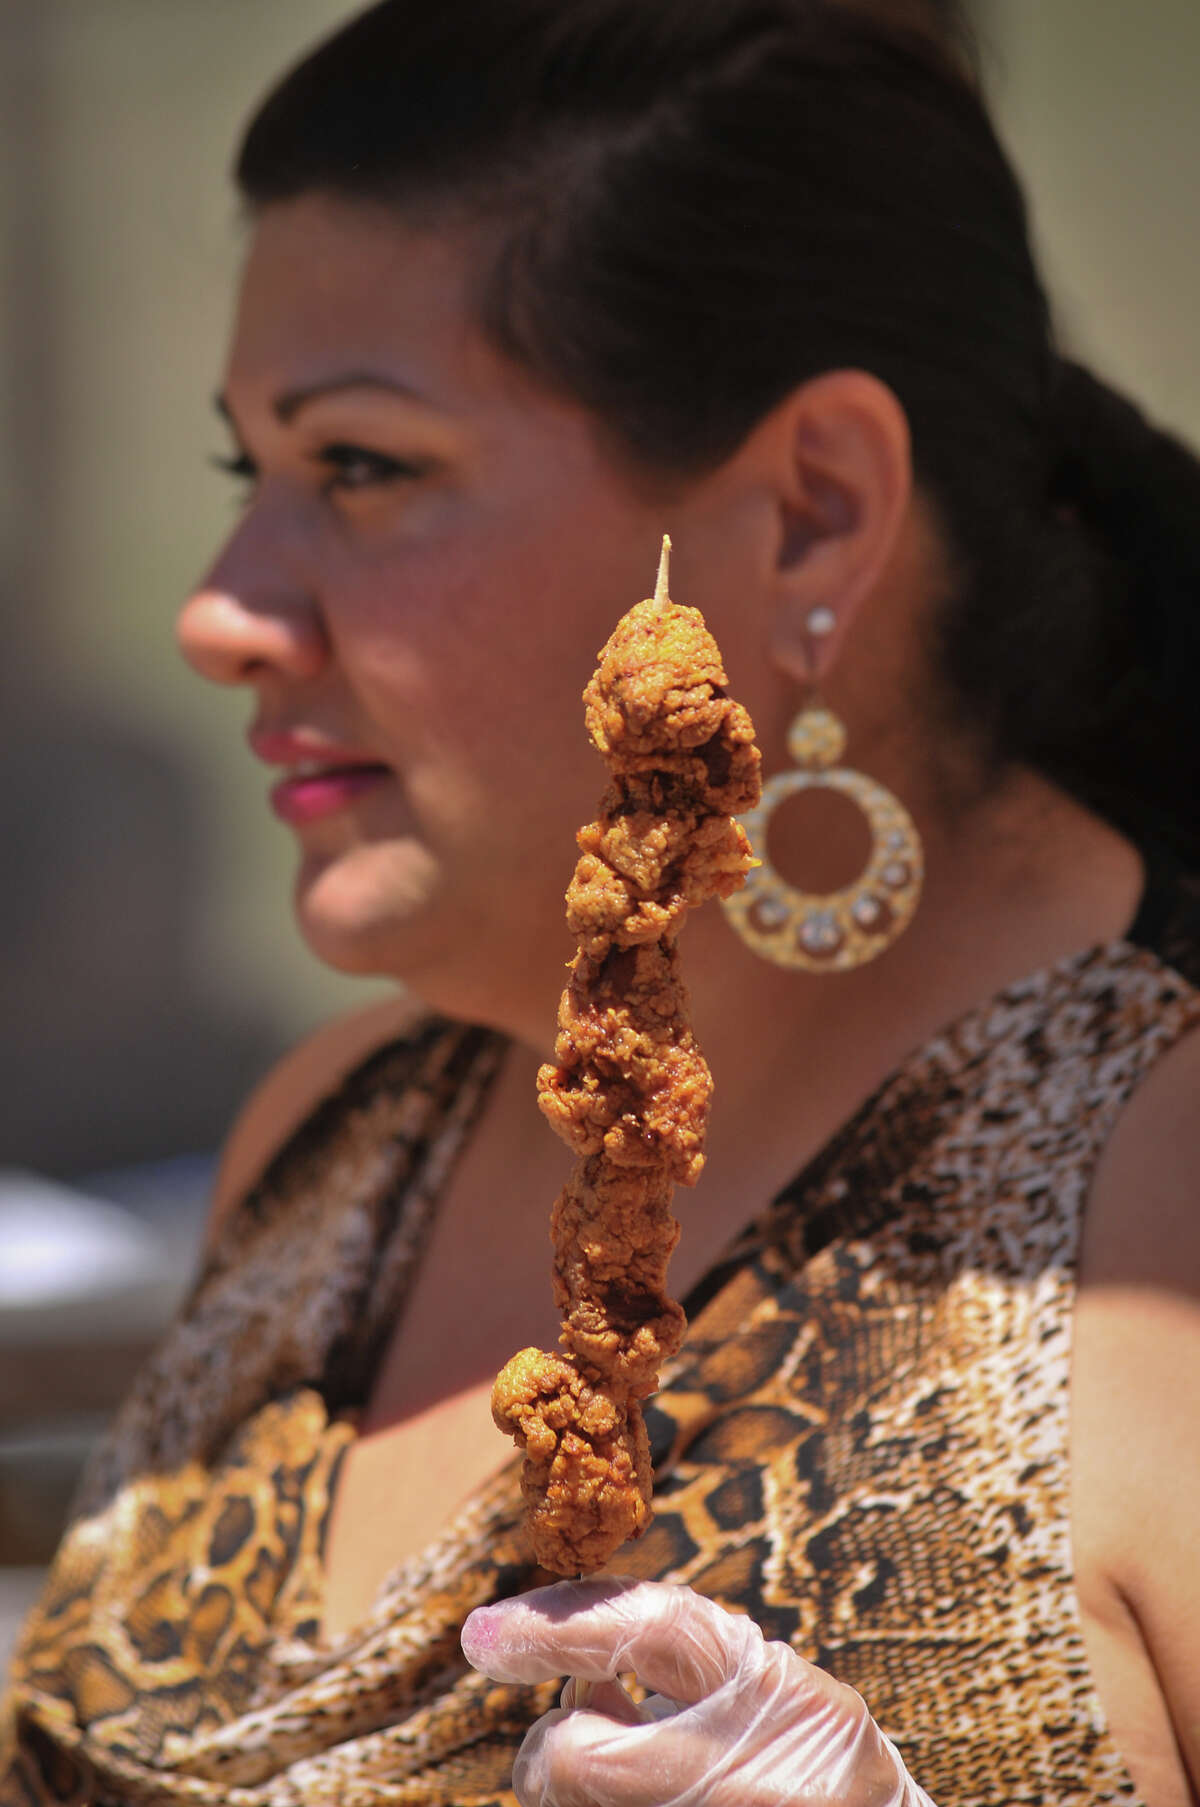 2. Flashy types wear alligator boots, but we prefer alligator-on-a-stick, a Fiesta dare at Taste of New Orleans.